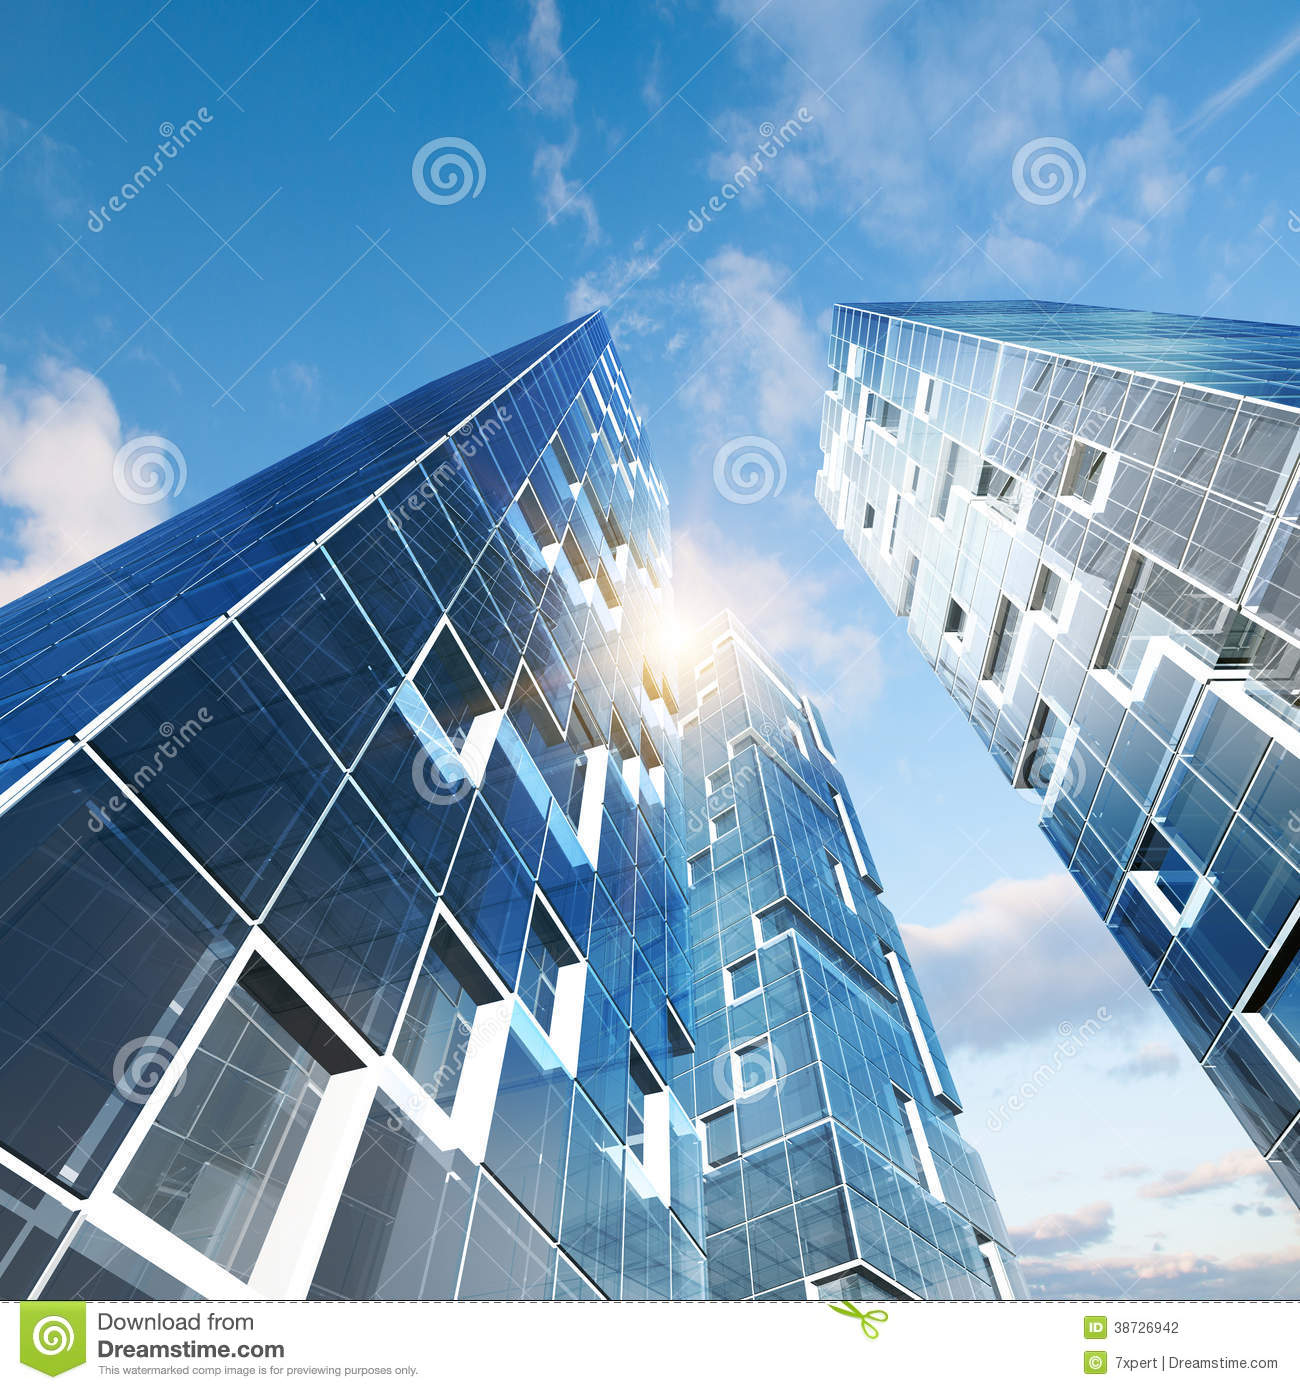 Abstract Building Stock Photography - Image: 38726942